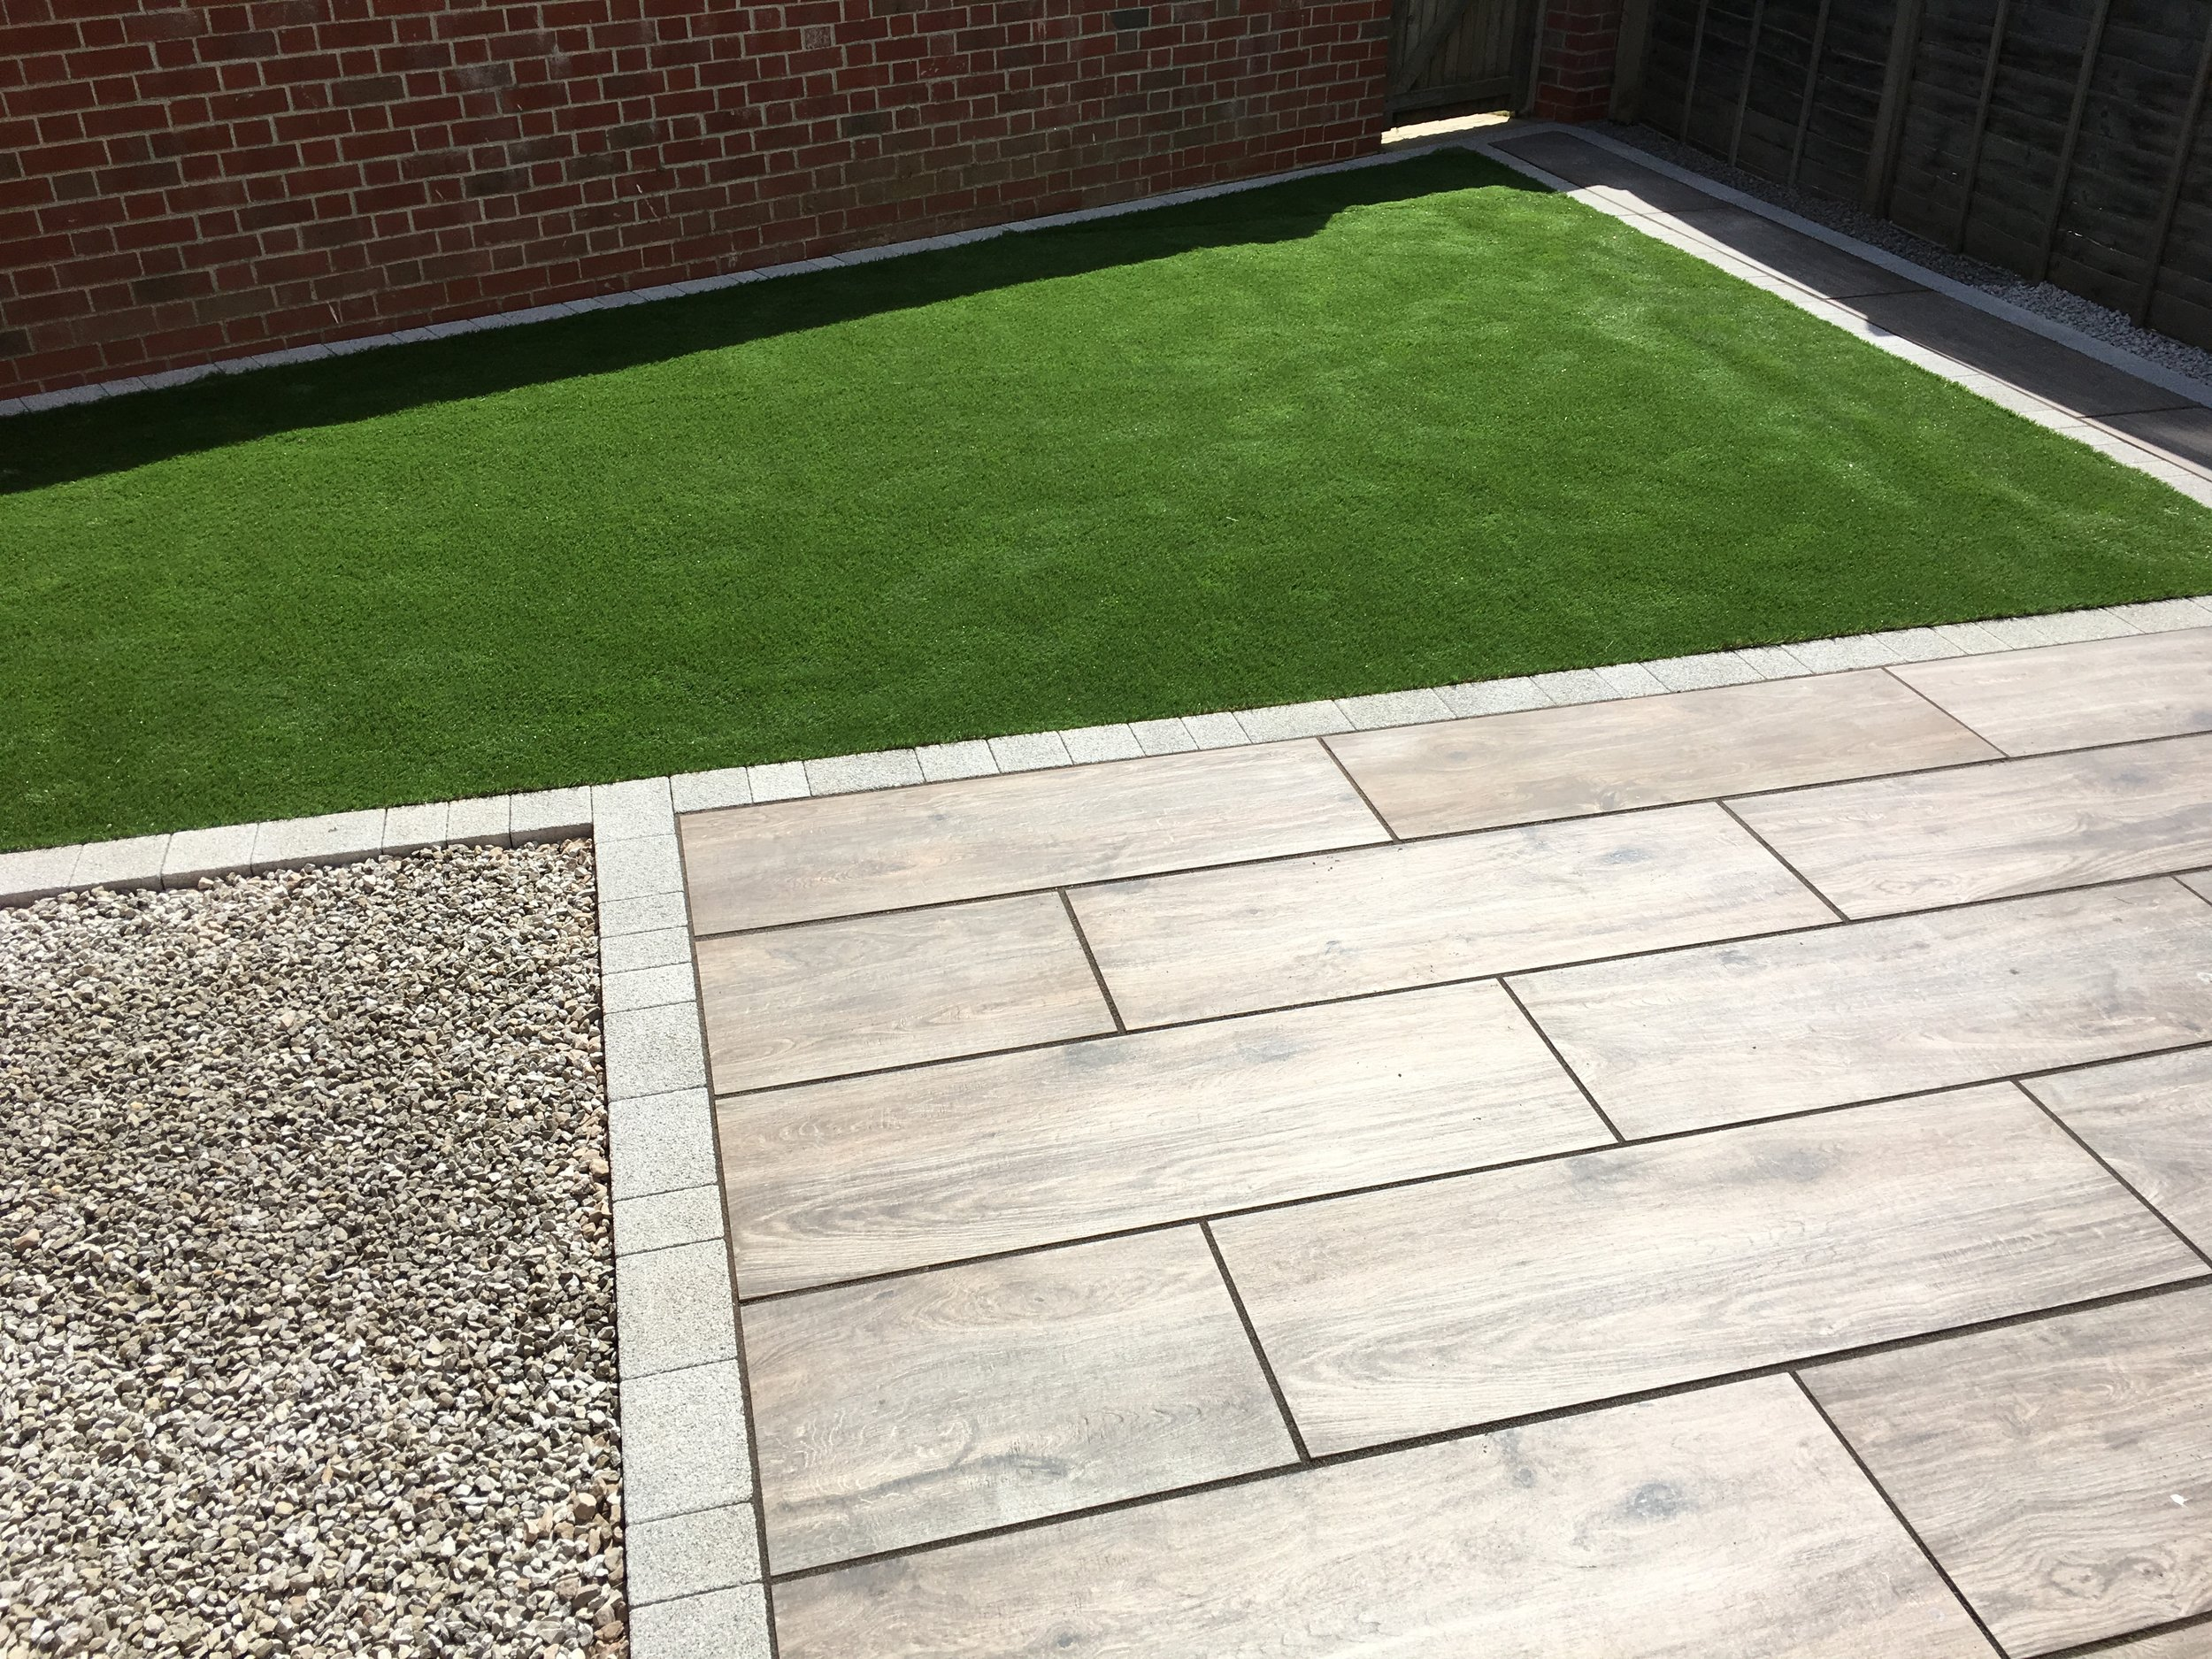 Brett Vintage oak porcelain with a Brett Lugano block was used on this patio with artificial grass